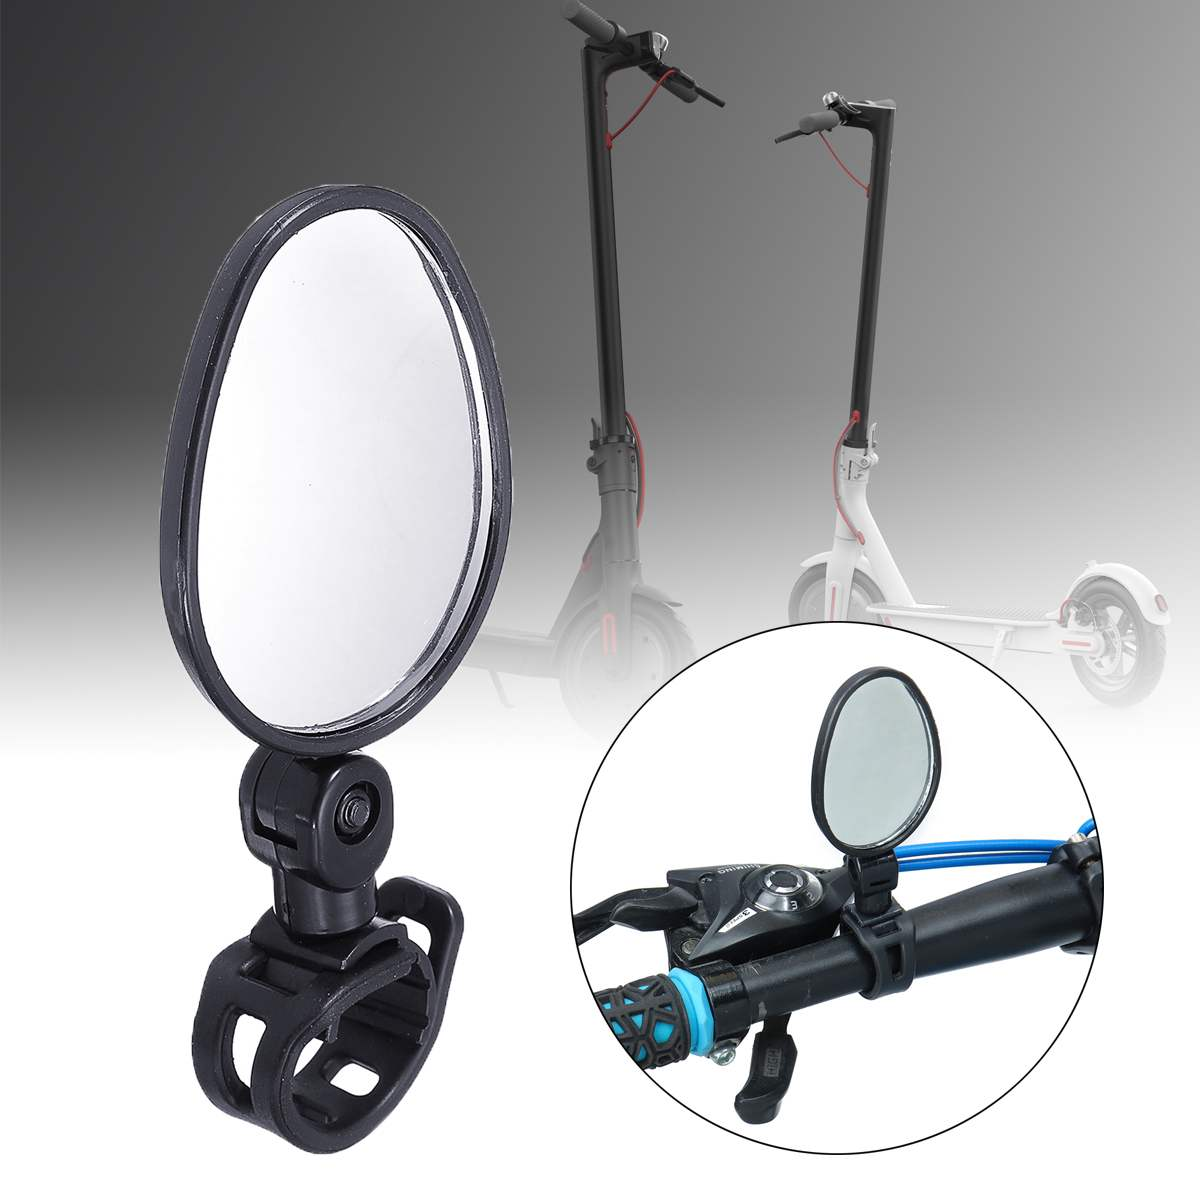 Motorcycle Mirrors Bar End Mirror Rear View Motor Handlebar End Mirror Rearview Convex Mirror For Xiaomi M365 Ninebot Electric